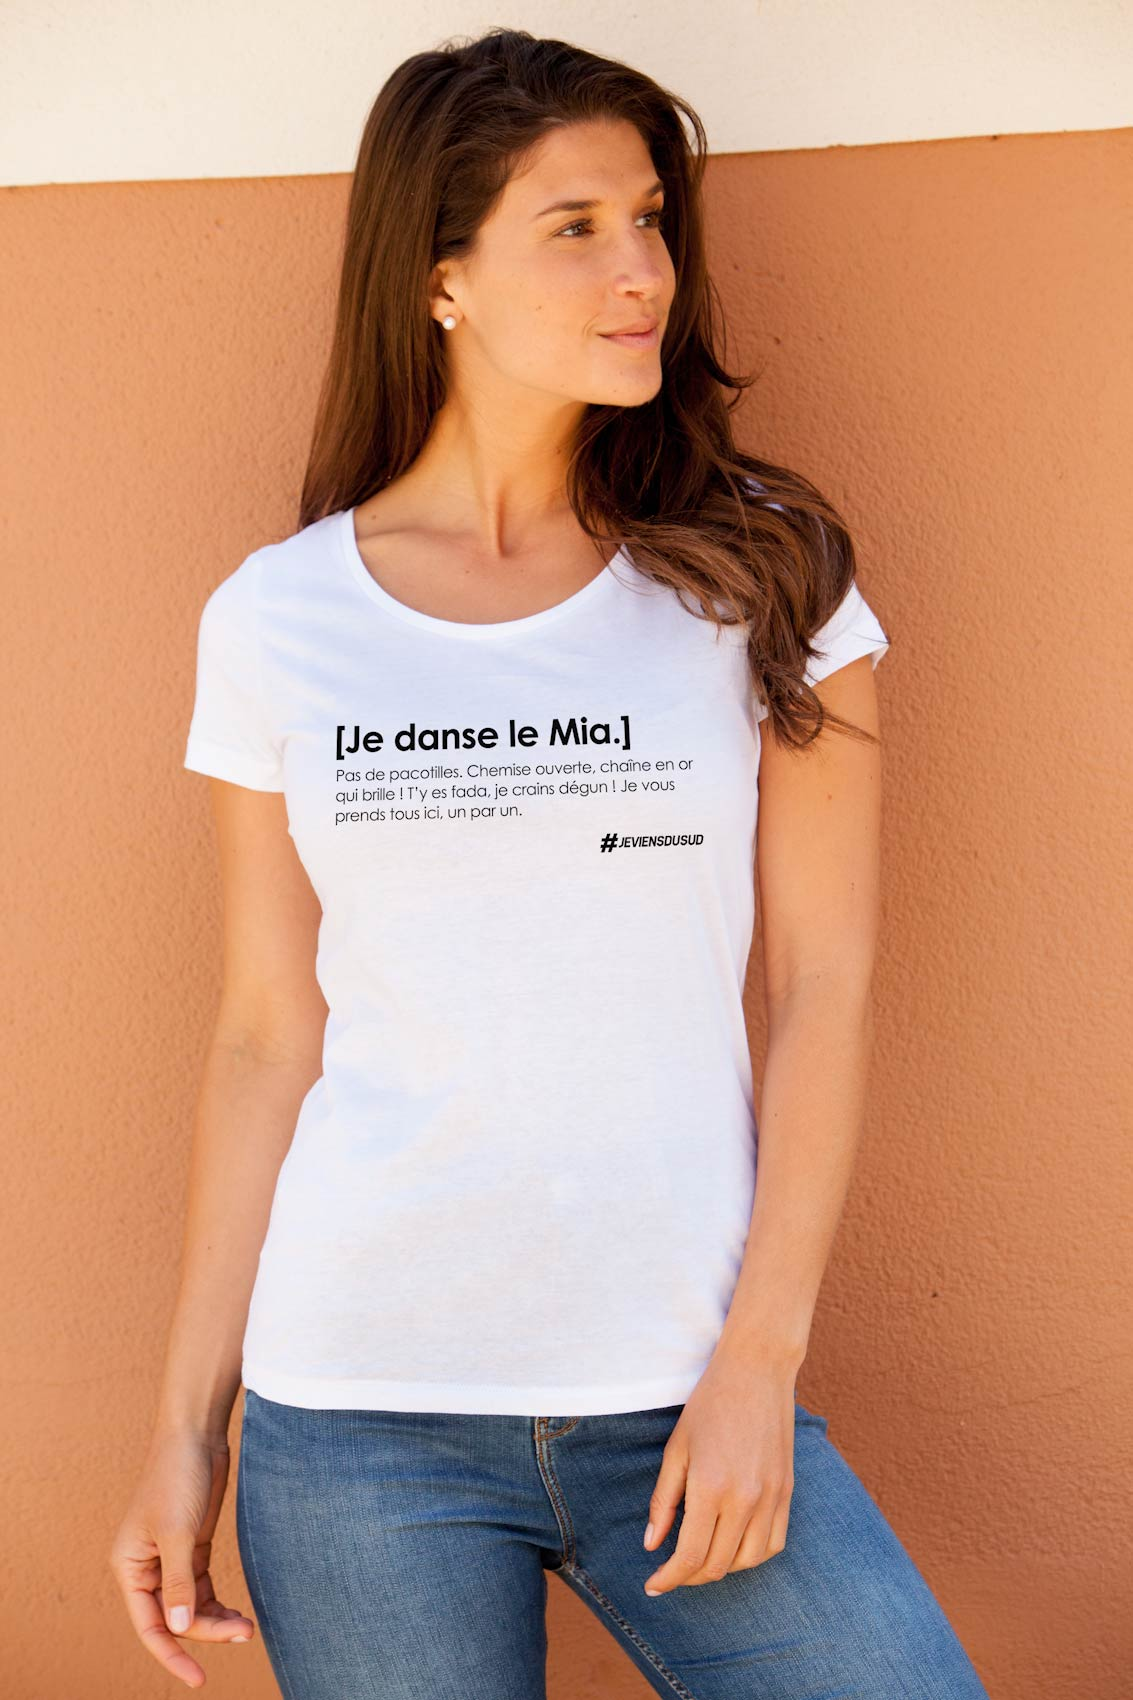 Le Collection Mia Shirt T Danse Crochets Je Femme eWEIbDH9Y2